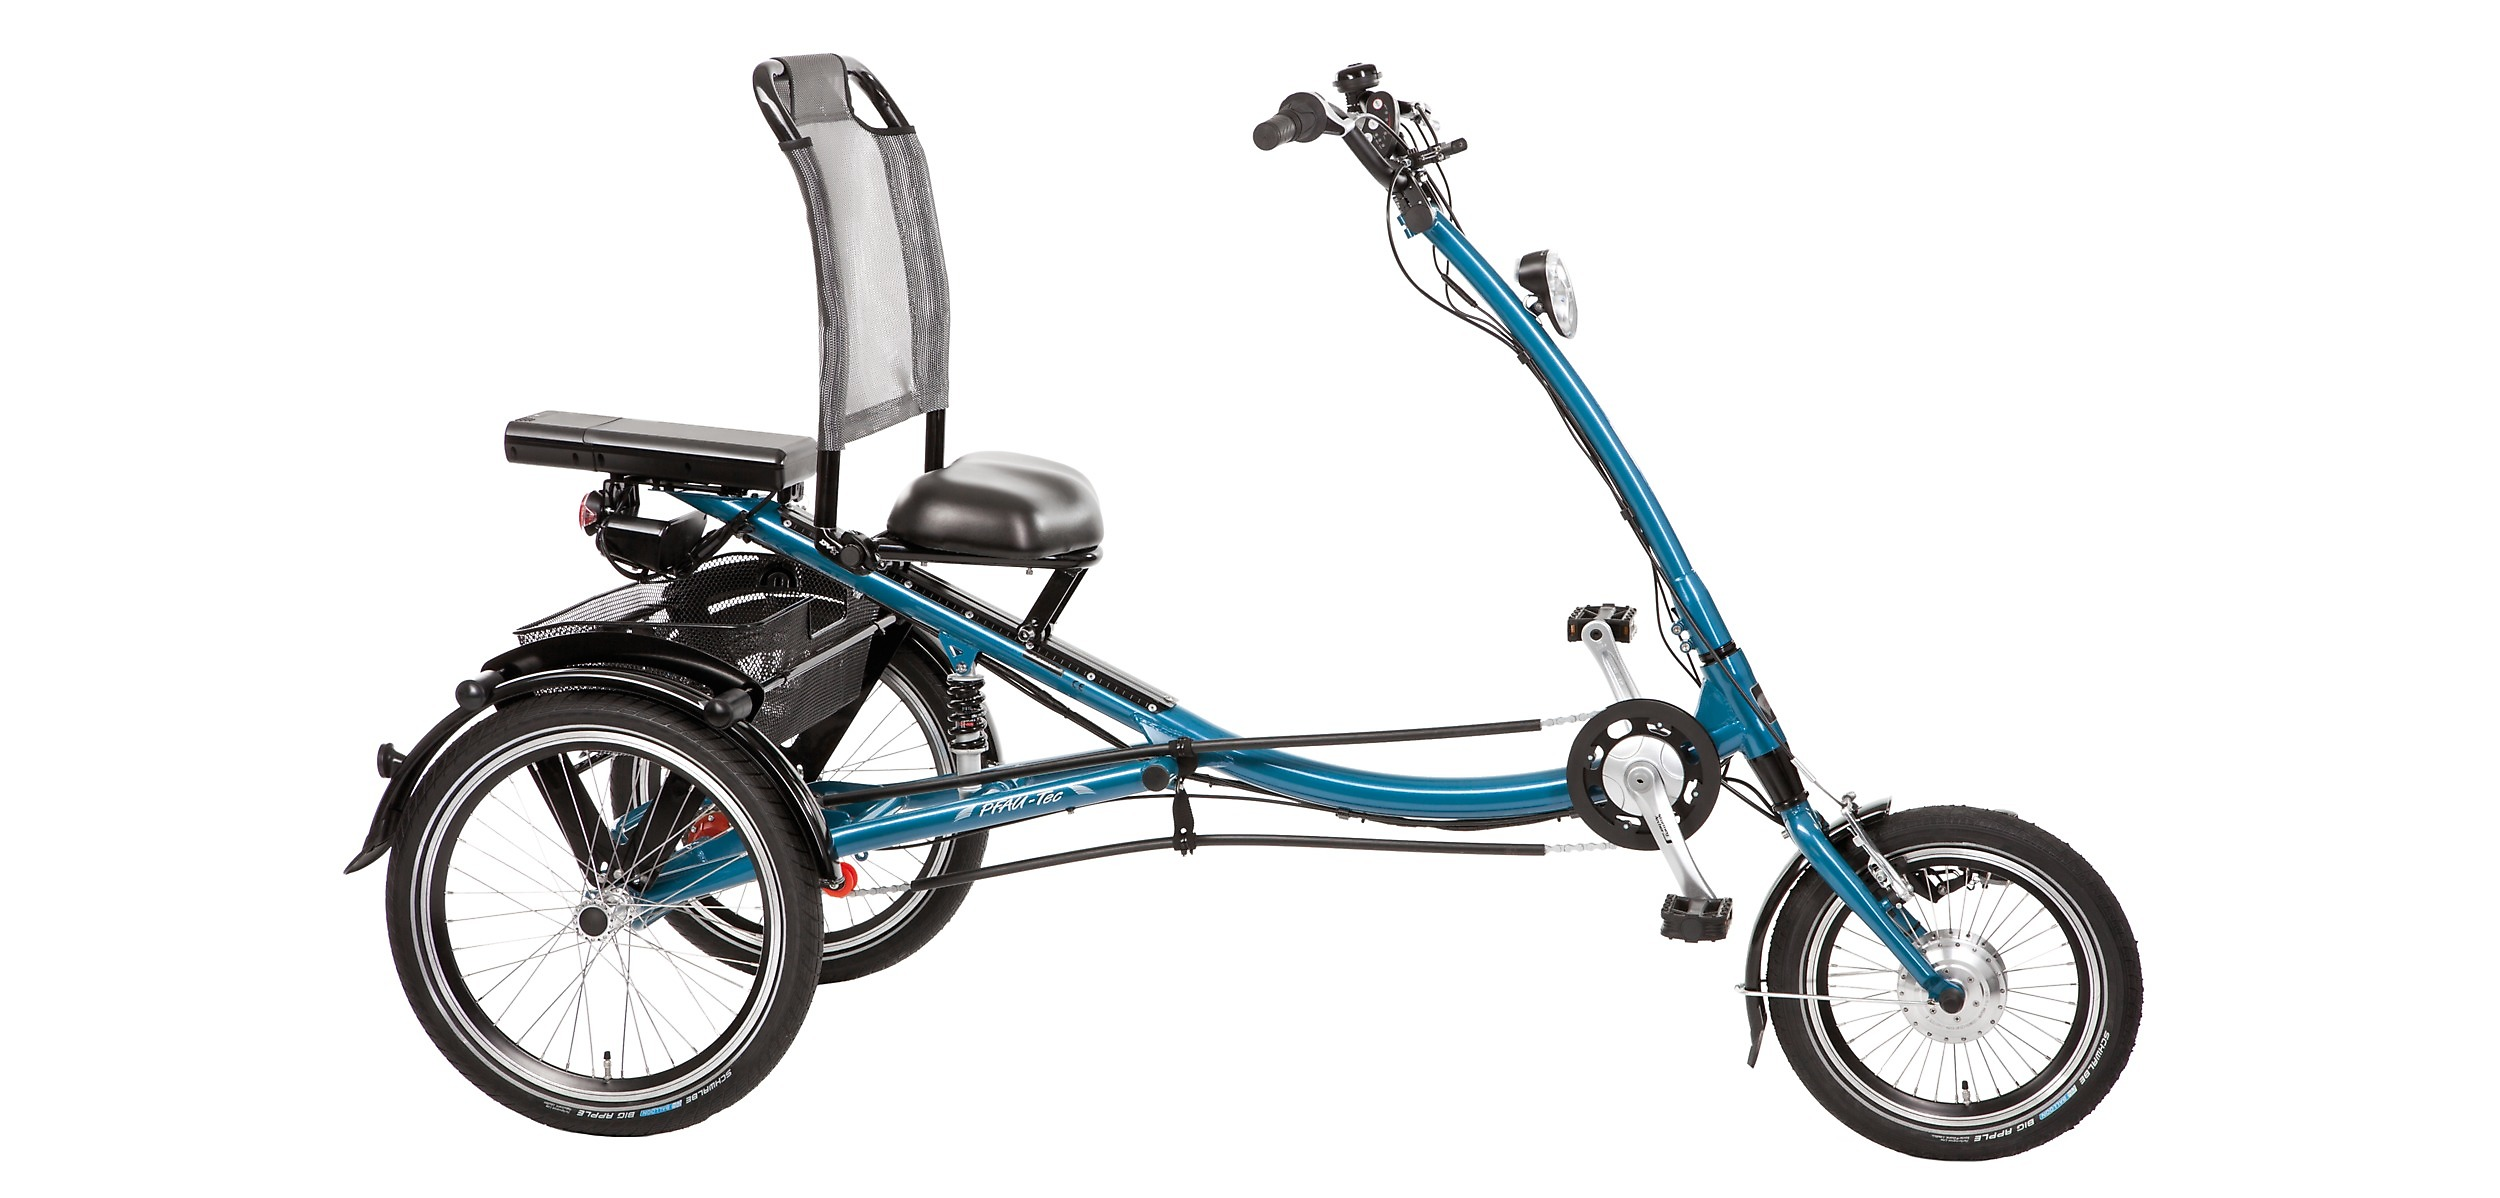 beotrend pfau tec scootertrike elektro dreirad 7 gang r cktritt. Black Bedroom Furniture Sets. Home Design Ideas